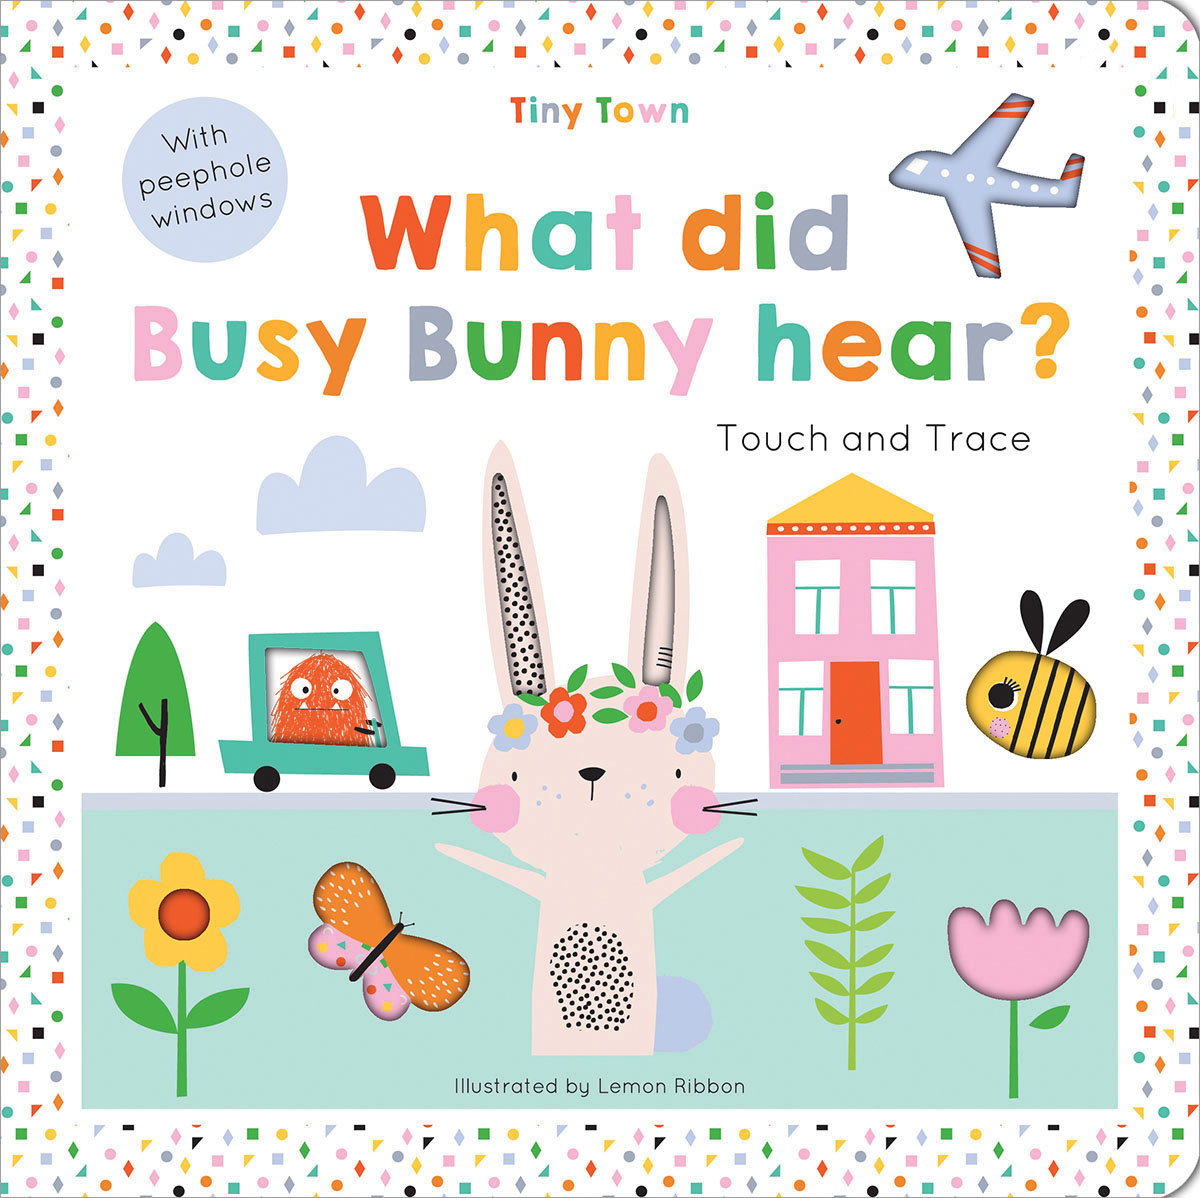 WHAT DID BUSY BUNNY HEAR?